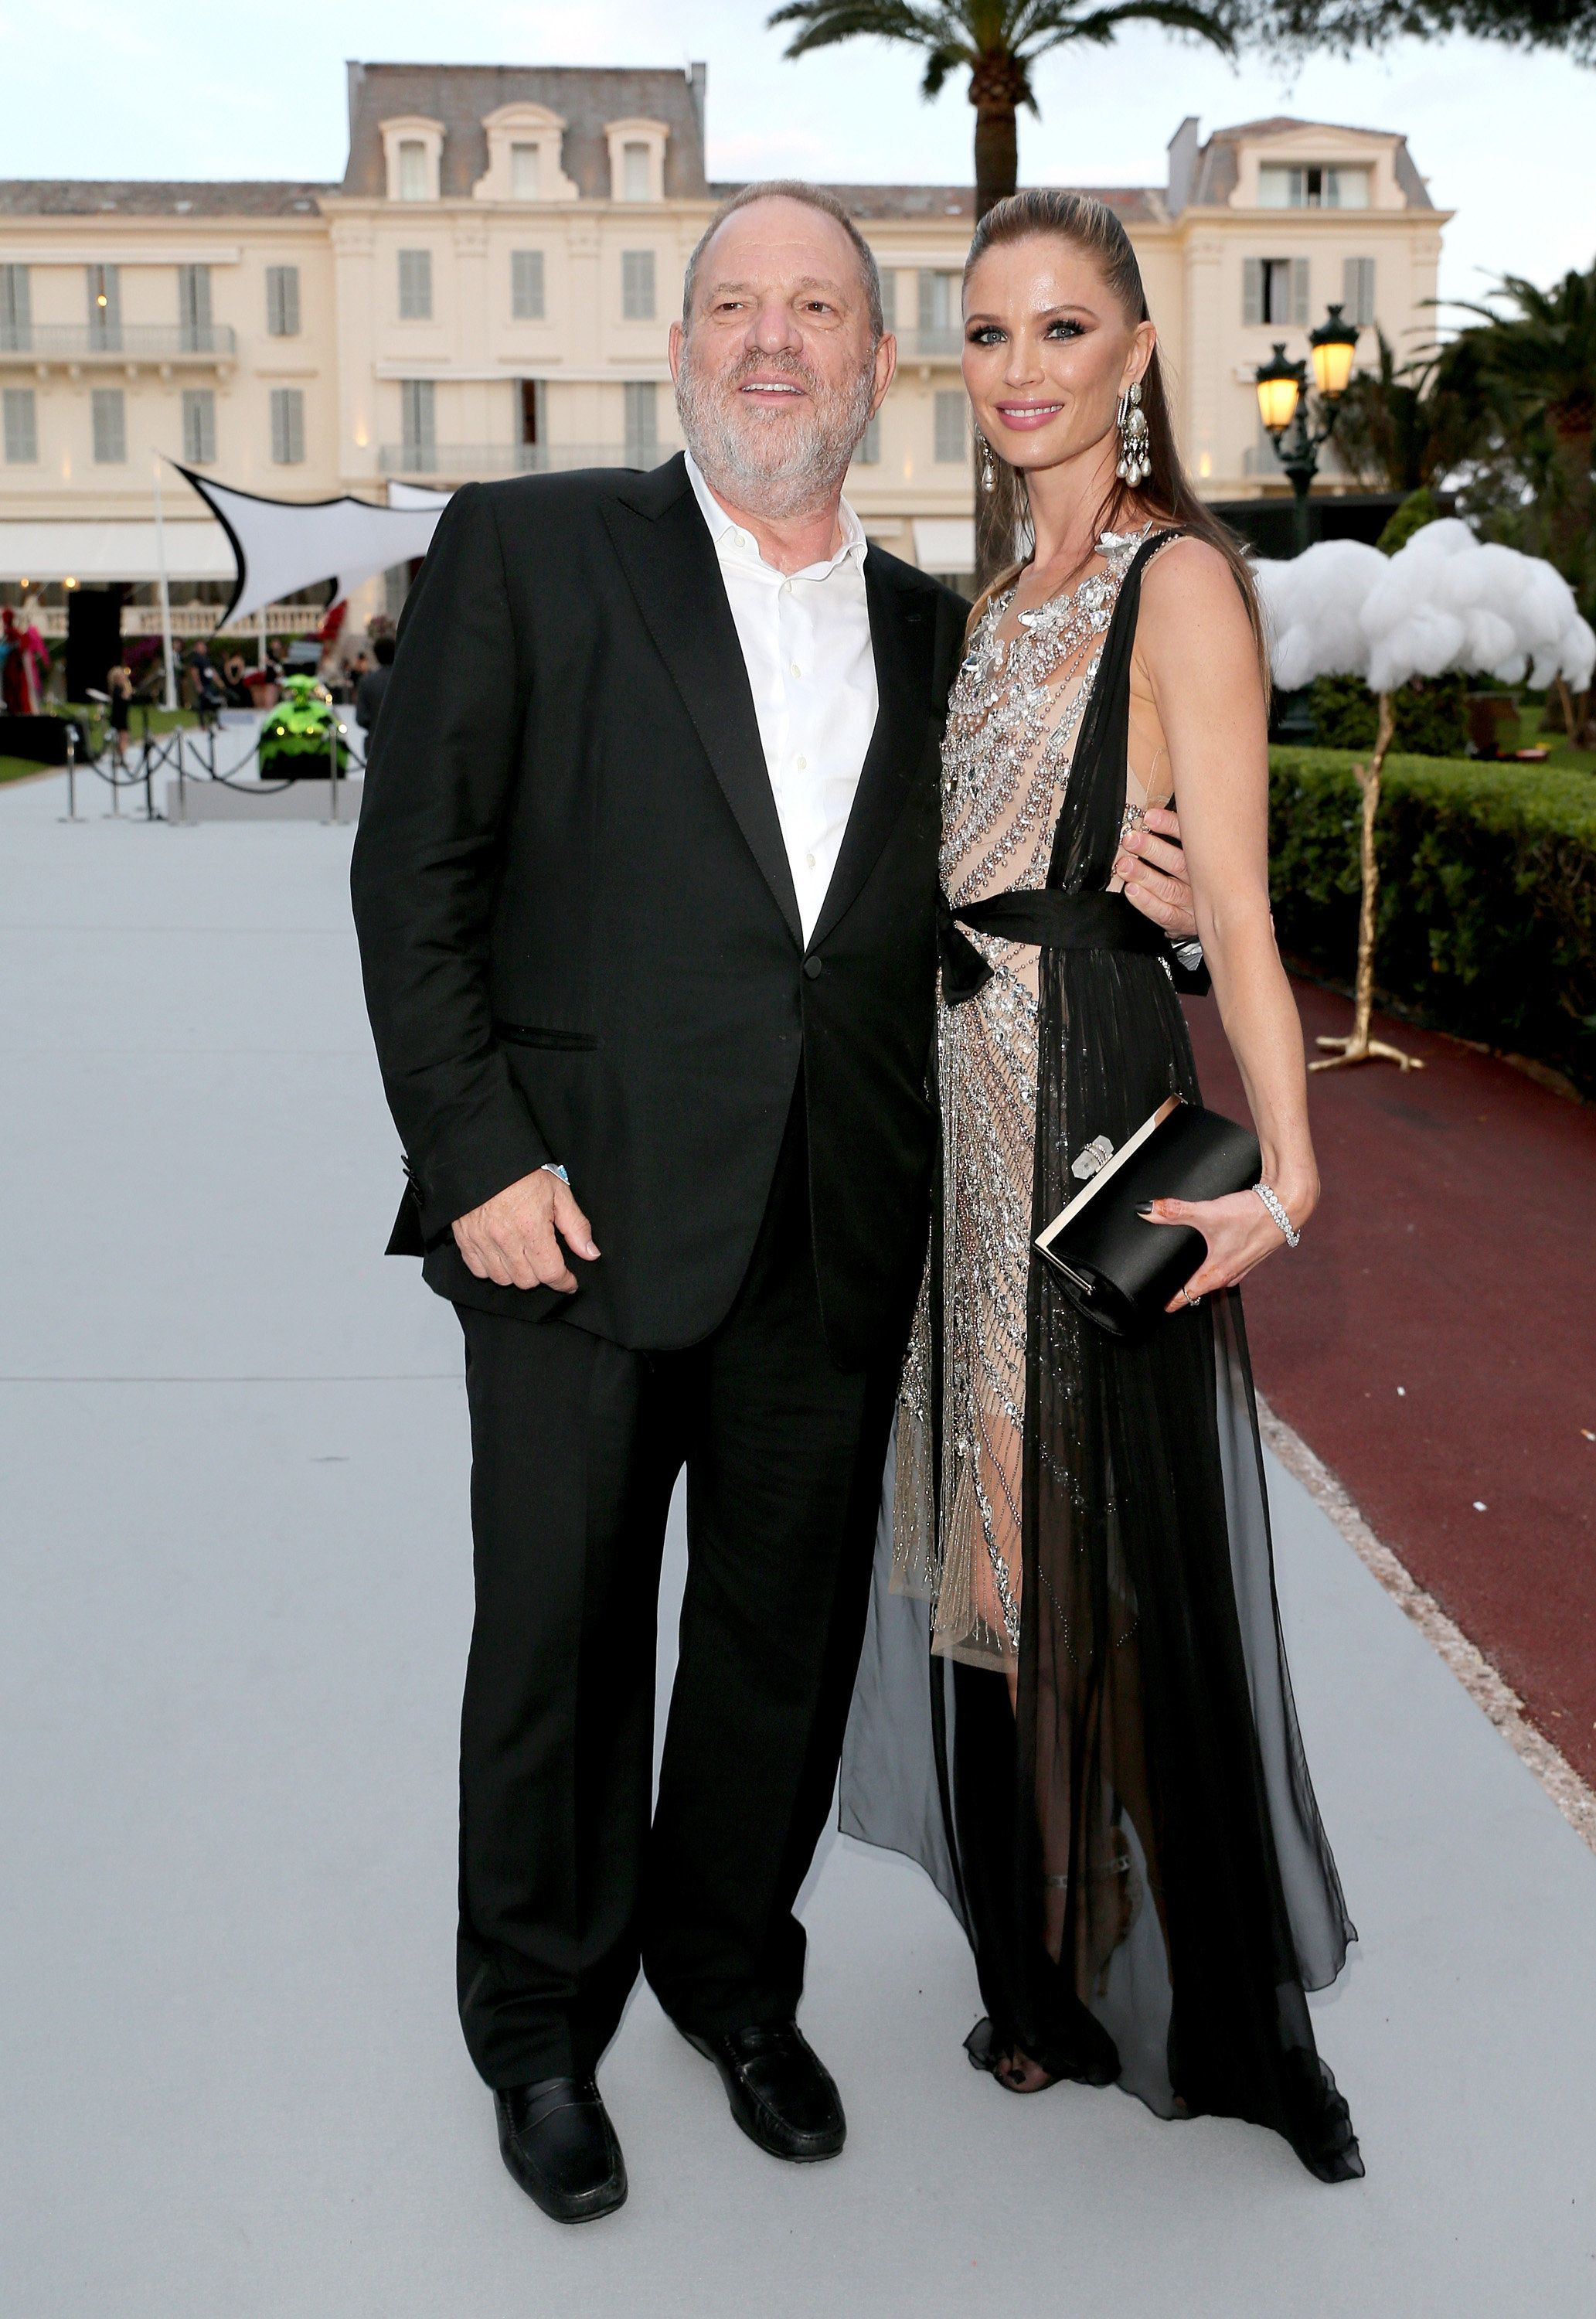 CAP D'ANTIBES, FRANCE - MAY 25:  Film producer Harvey Weinstein (L) and Georgina Chapman arrive at the amfAR Gala Cannes 2017 at Hotel du Cap-Eden-Roc on May 25, 2017 in Cap d'Antibes, France.  (Photo by Gisela Schober/Getty Images)